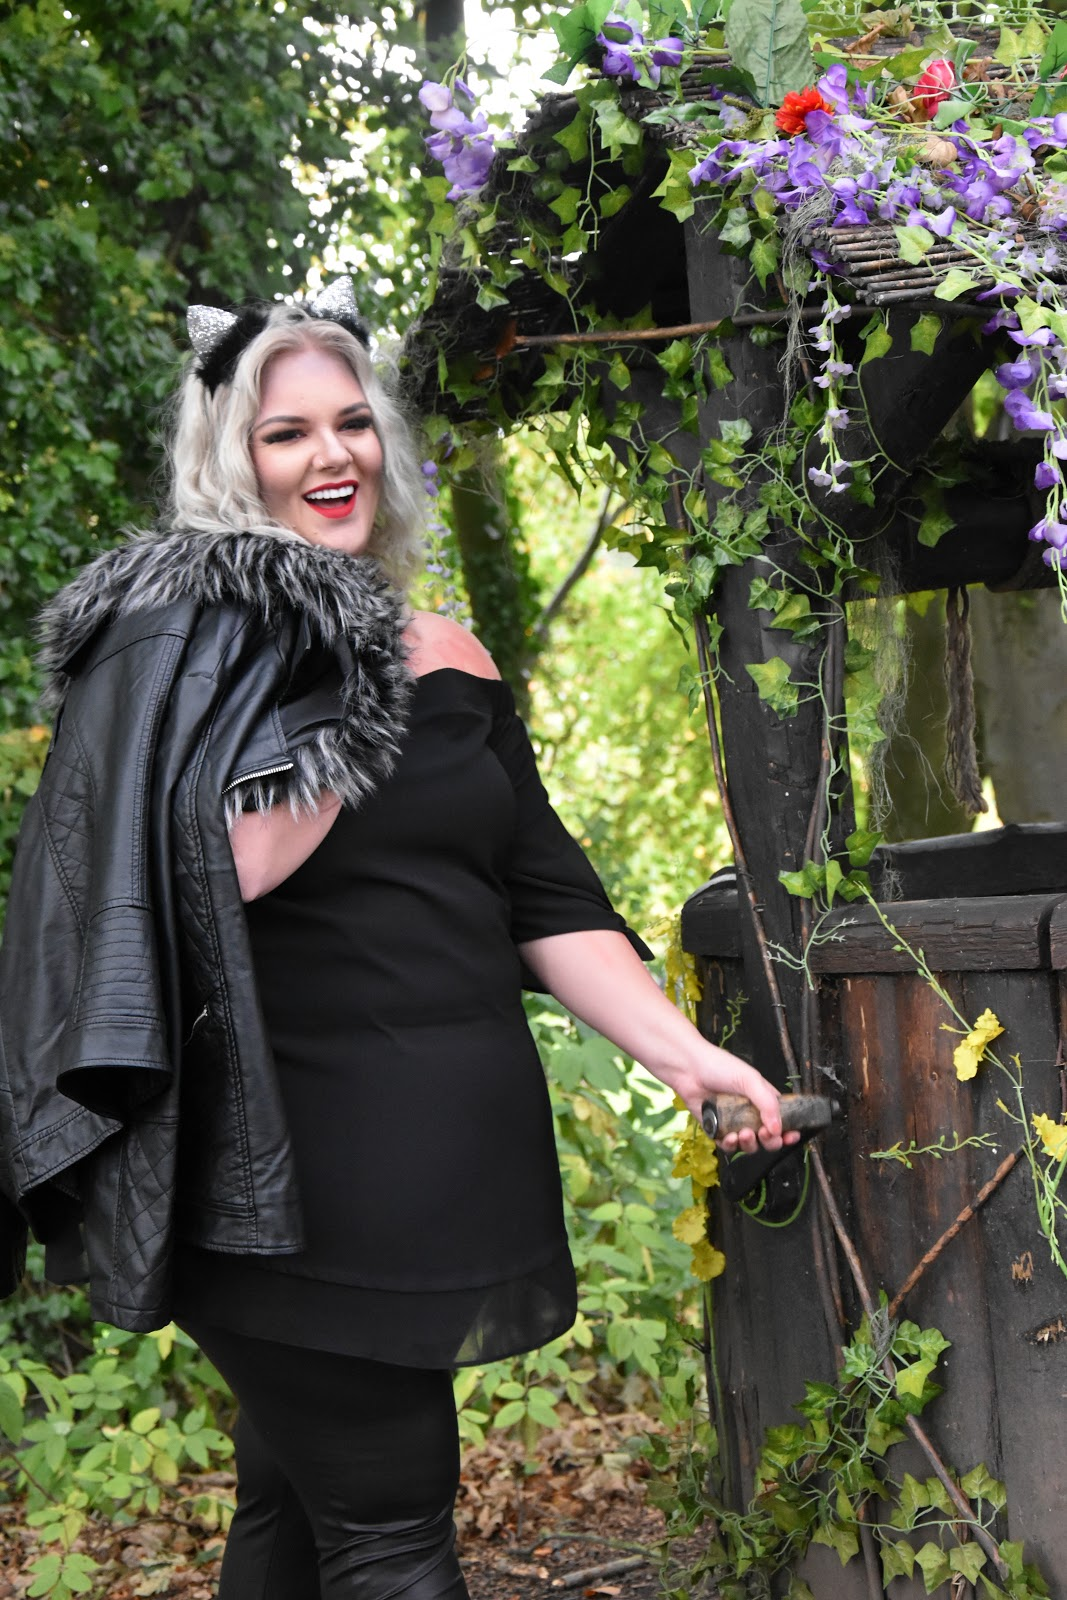 The Plus Size Faux Fur Leather Look Jacket You NEED This Autumn from Yours Clothing at The Alnwick Garden